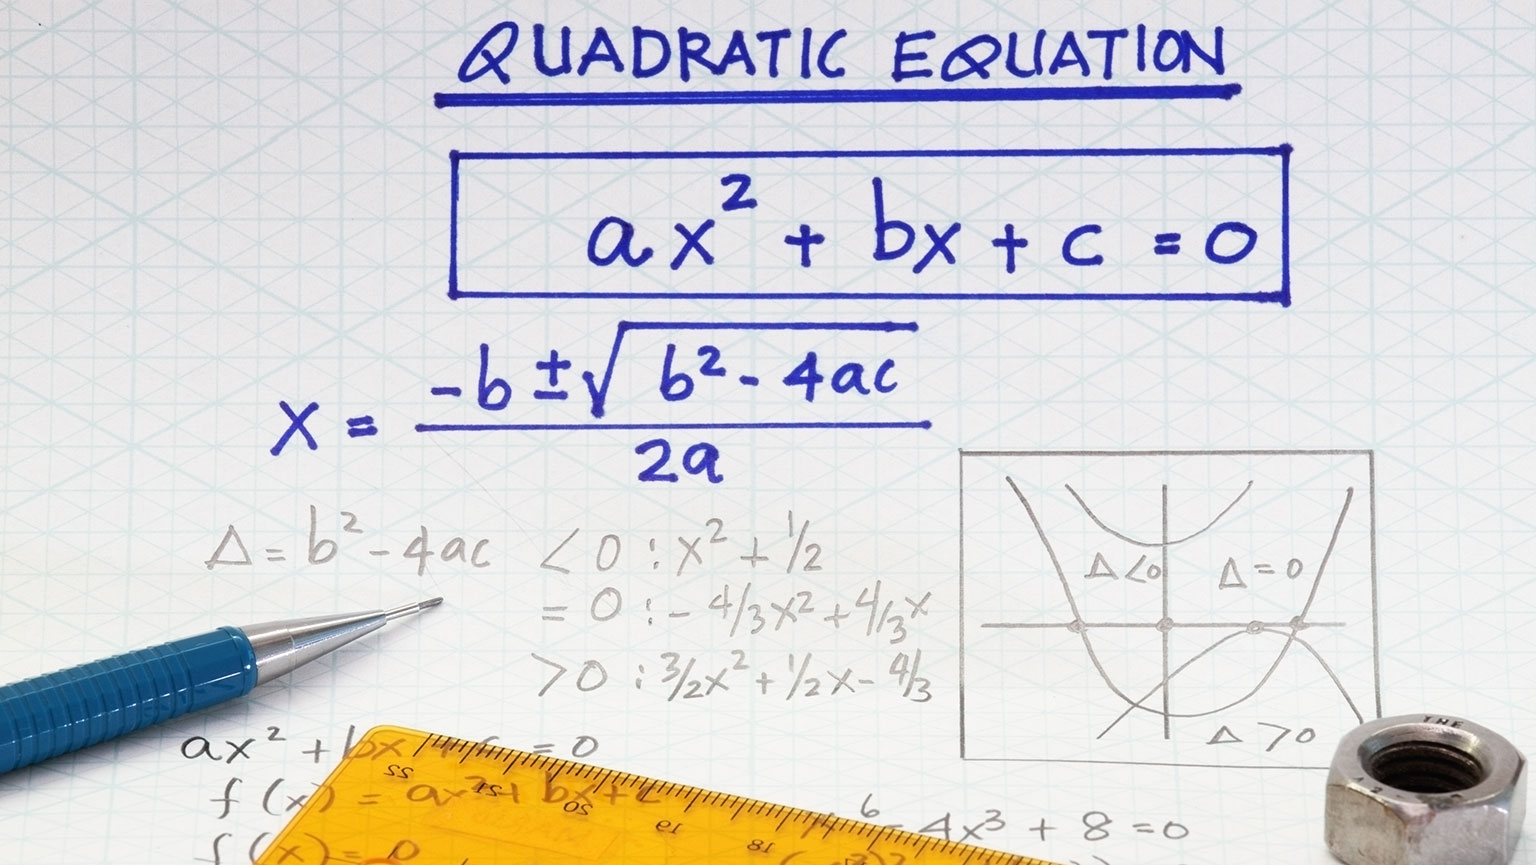 Quadratic Equations—The Quadratic Formula